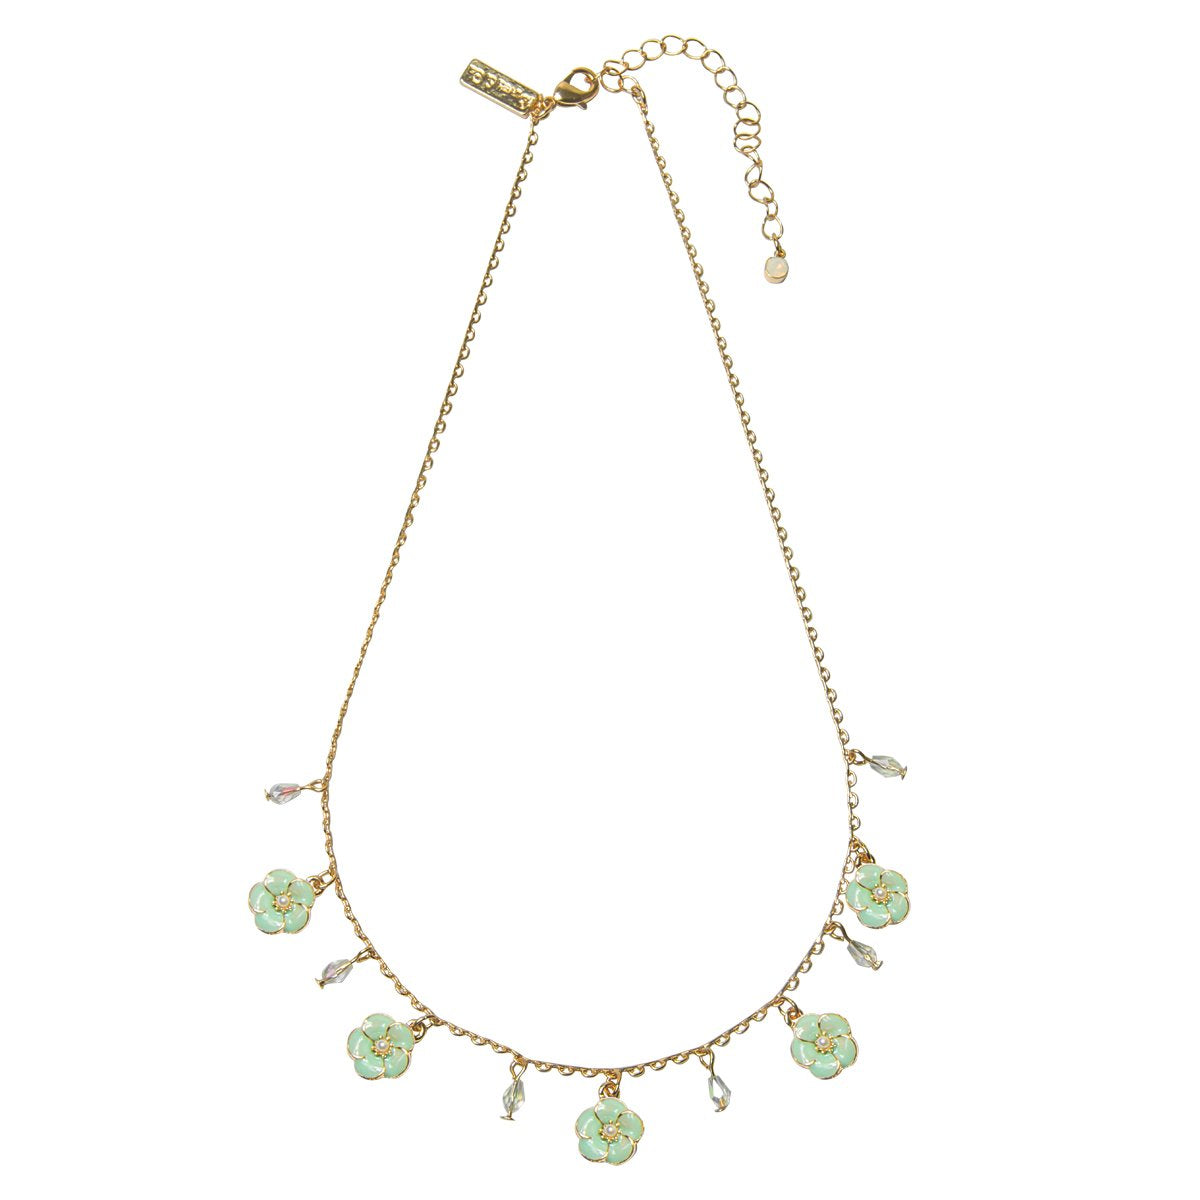 Lovett & Co. Small Rose Necklace in Mint  Enamel | Putti Fine Fashions